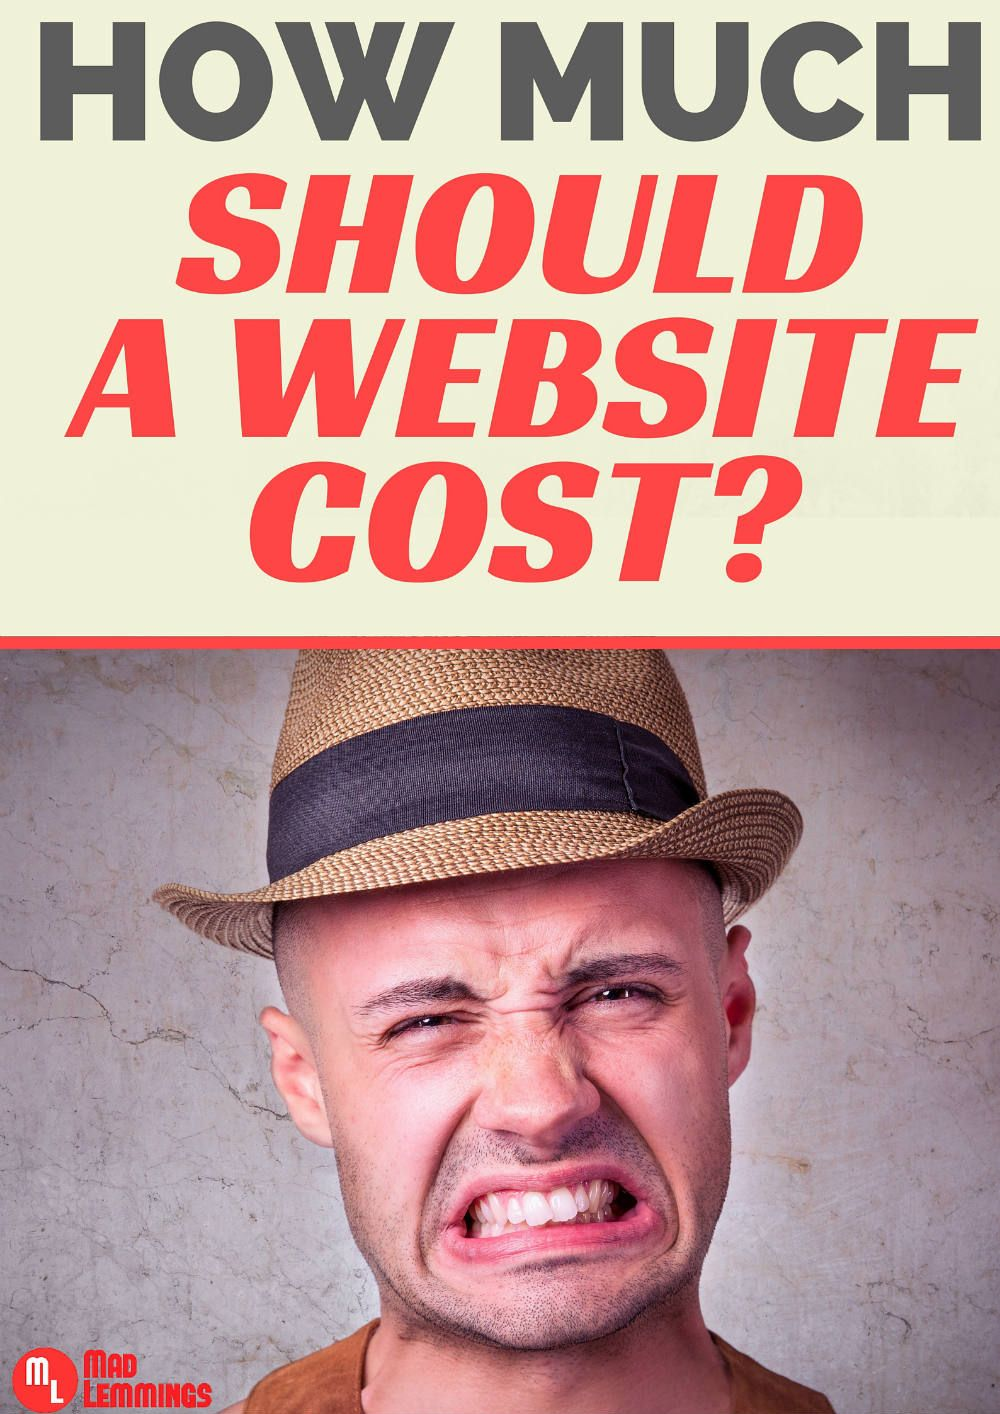 How Much Does It Cost To Build A Website? Building a